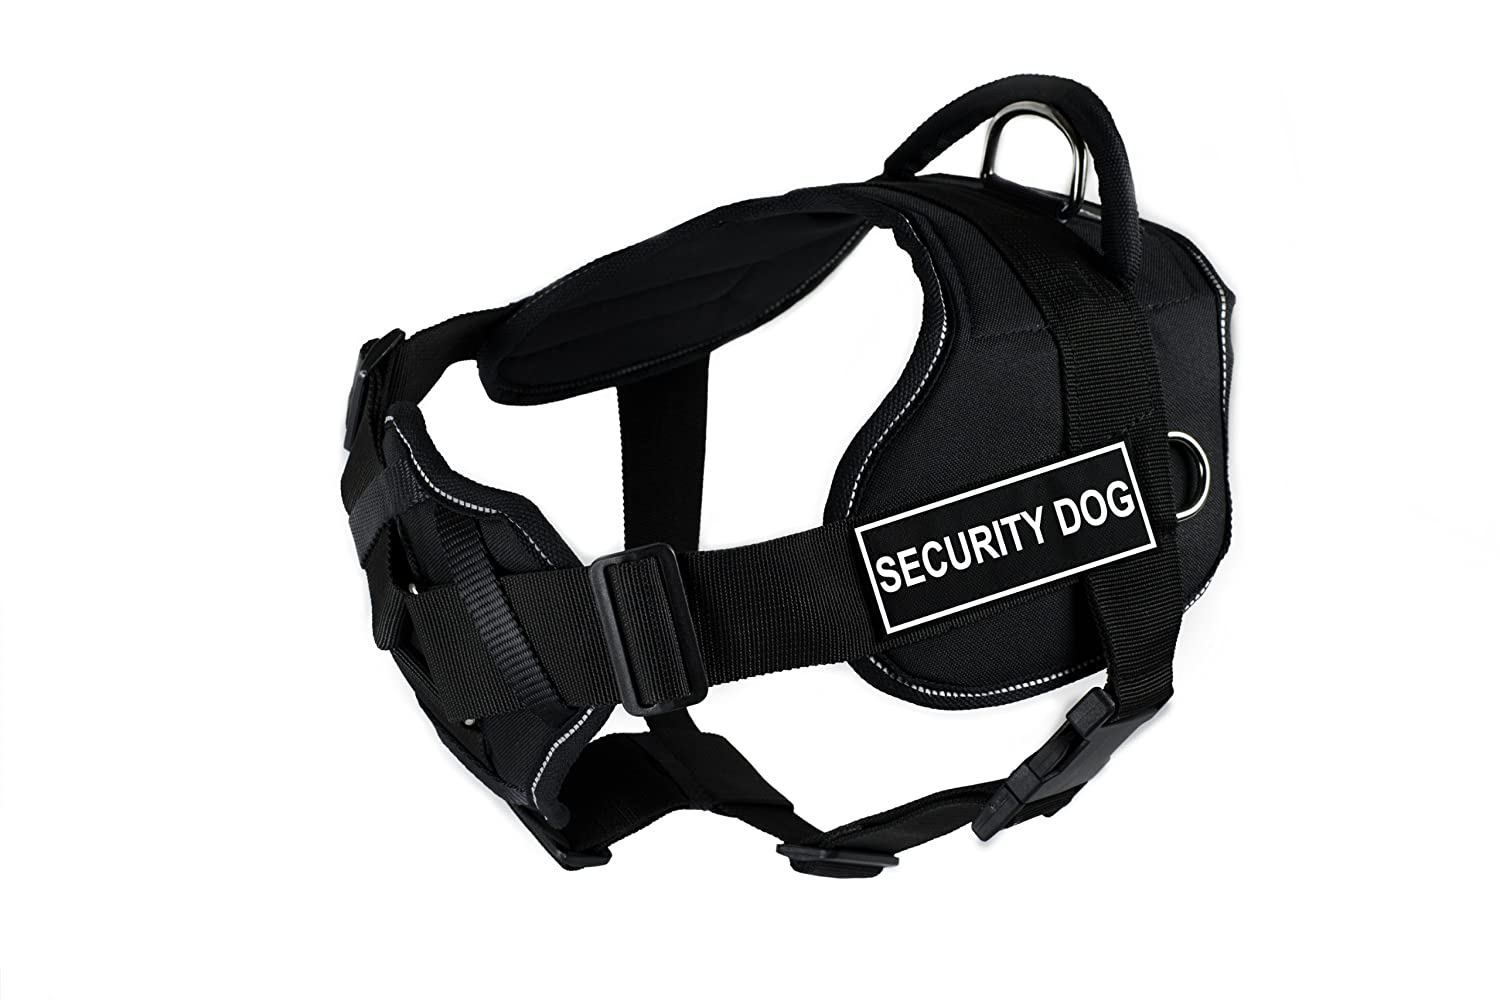 Dean & Tyler D&T Fun-CH SECYD RT-L Fun Harness with Padded Chest Piece, Security Dog, Large, Black with Reflective Trim